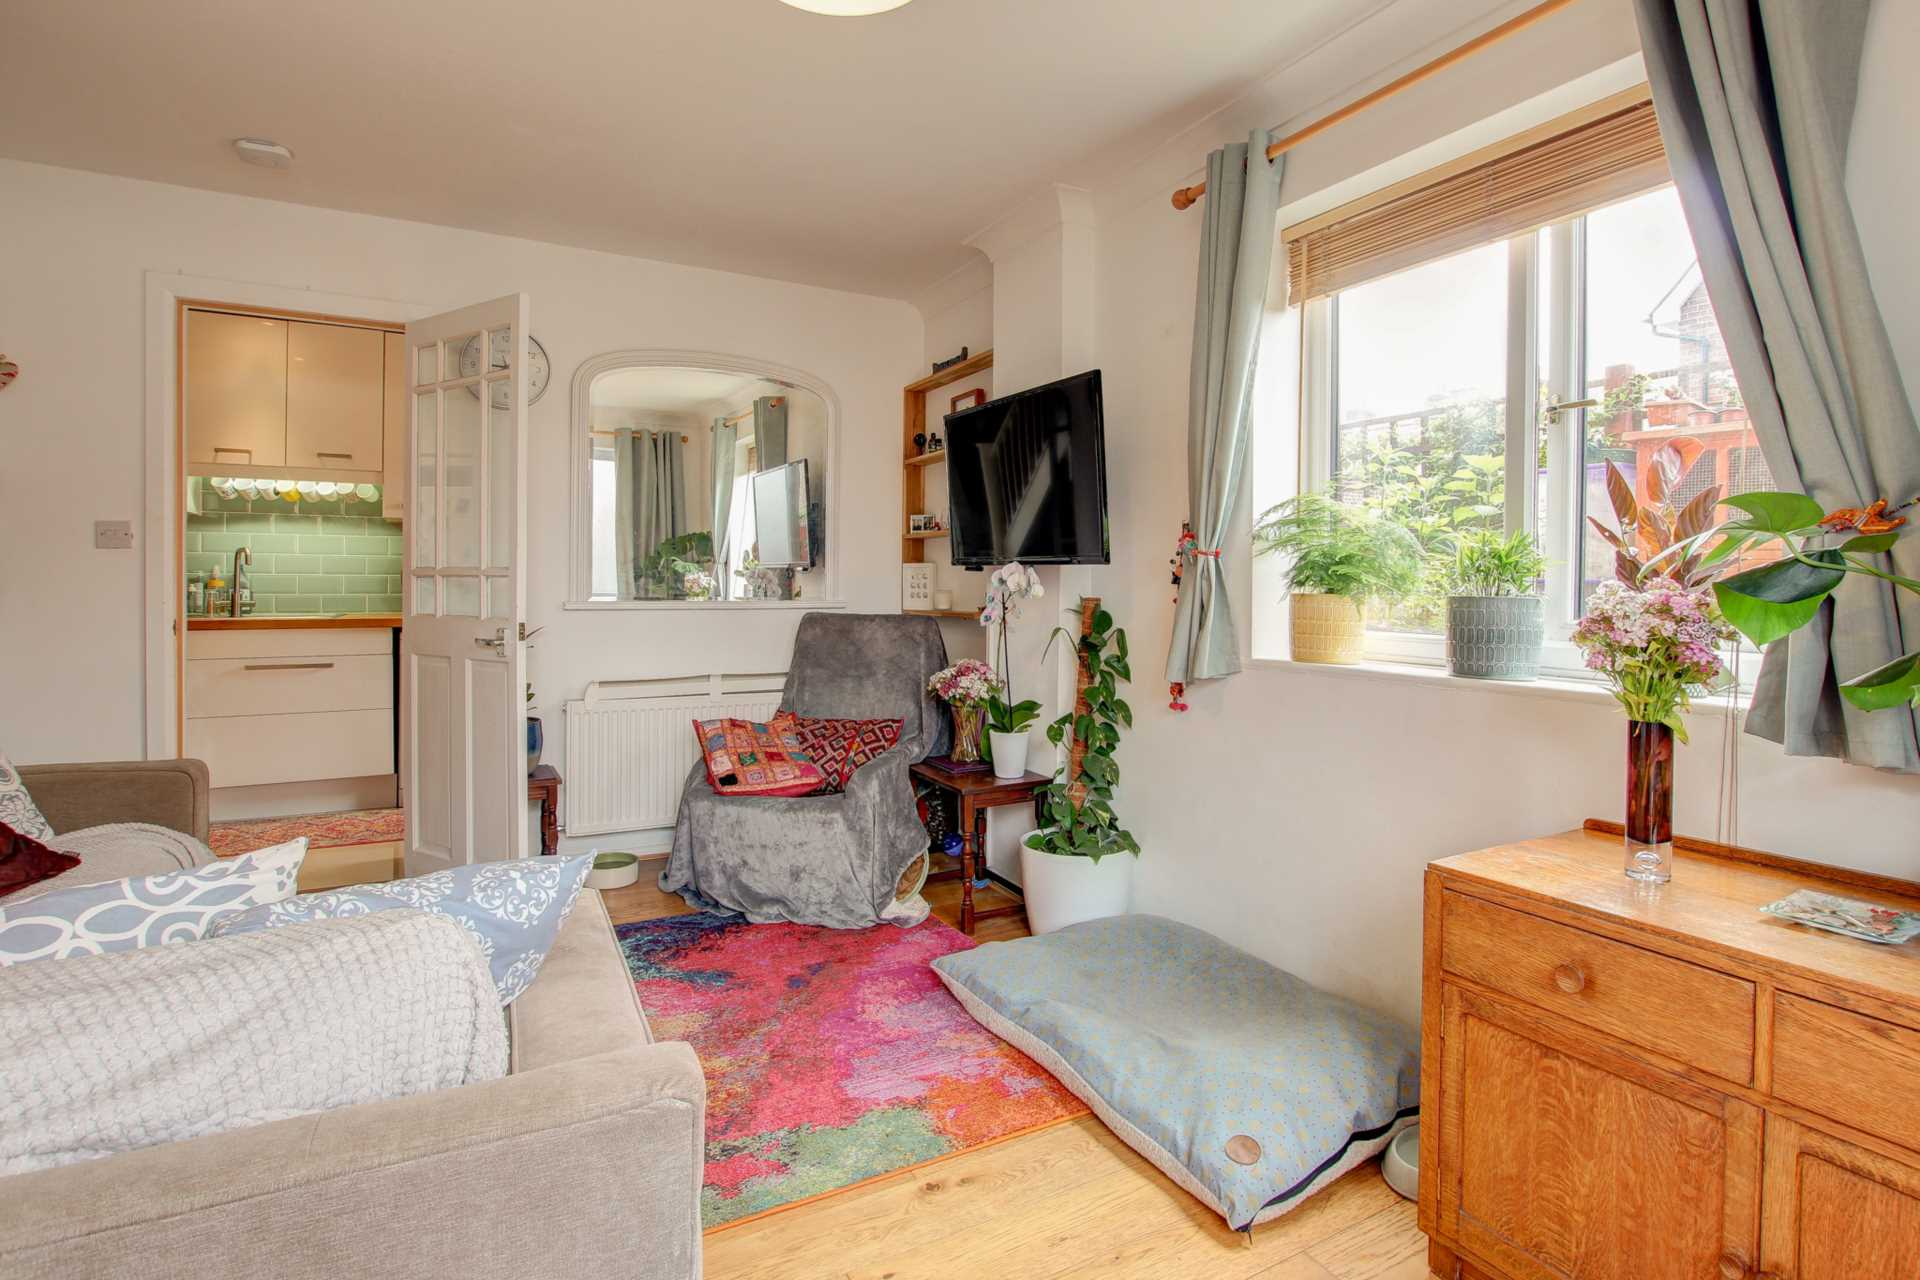 2 bed end of terrace house for sale in The Mews, Shorts Lane, Blandford Forum, Blandford Forum 8